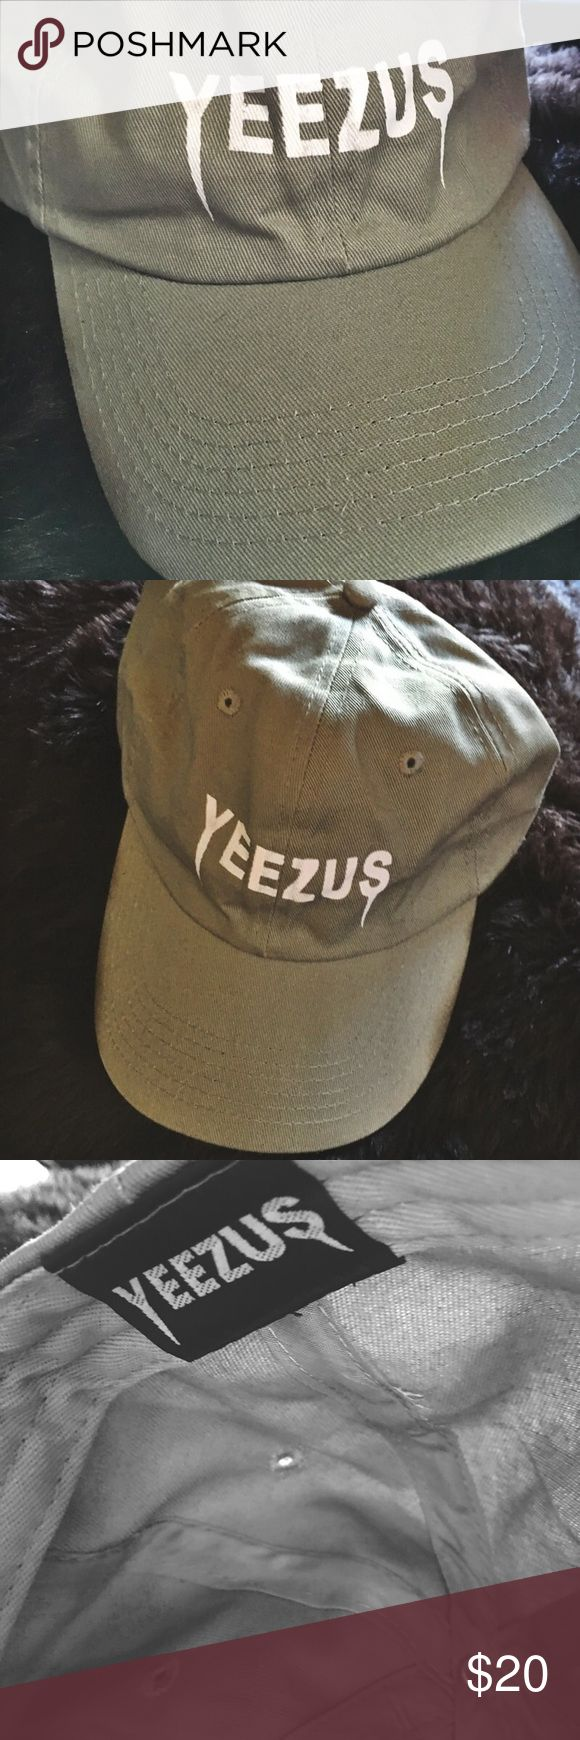 Yeezus Tour Dad Cap From the Yeezus Tour Merchandise Collection. Yeezy Accessories Hats